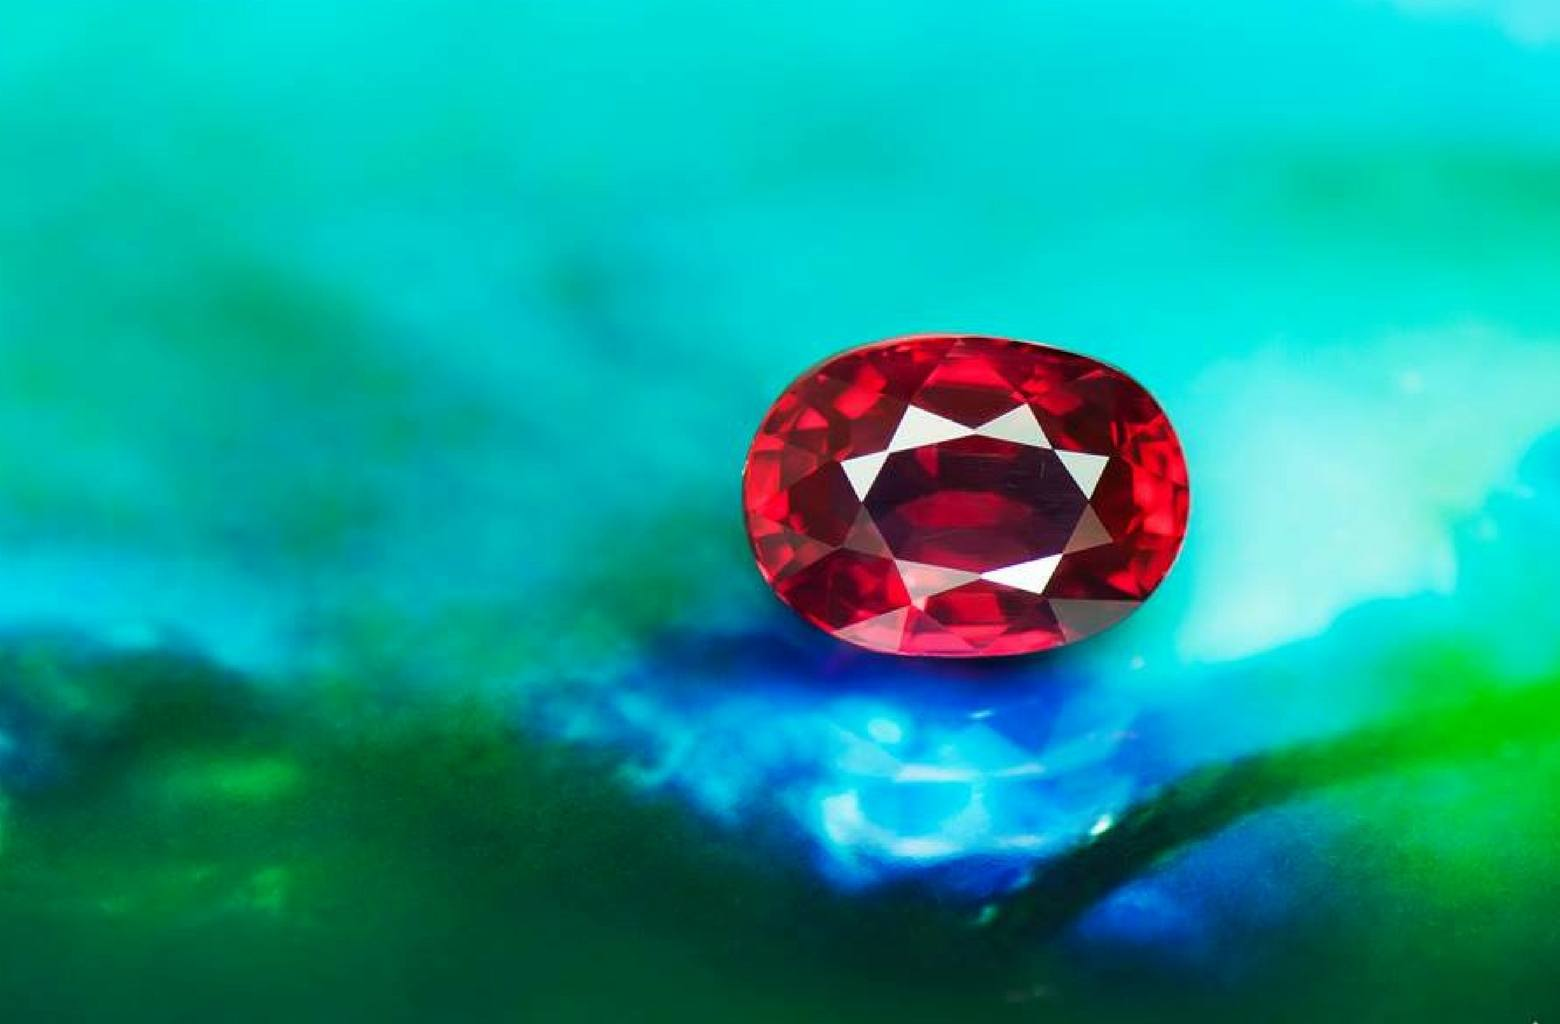 4 carat unheated red Ruby from Mozambique